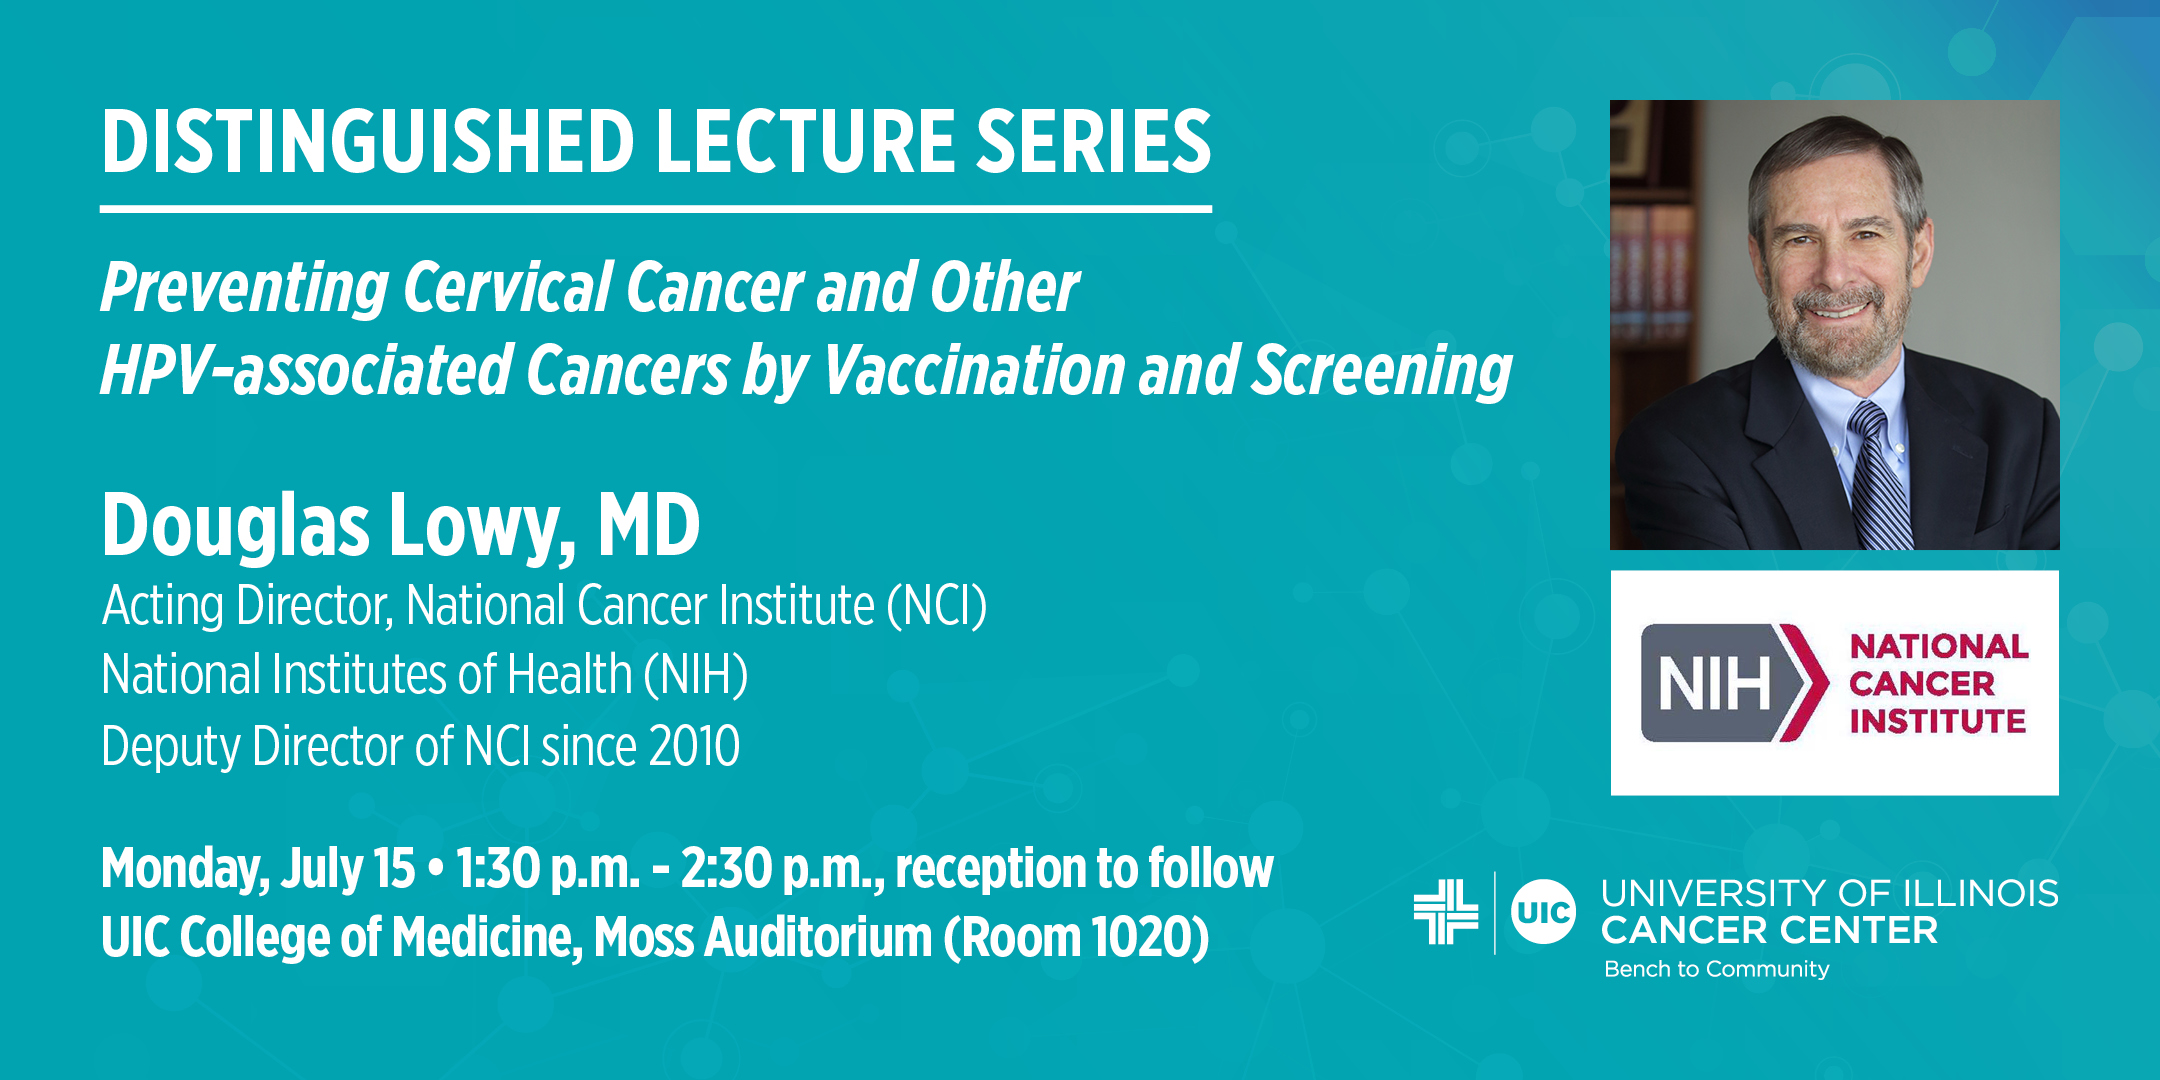 Distinguished Lecture Series Preventing Cervical Cancer and Other HPV-associated Cancers by Vaccination and Screening.